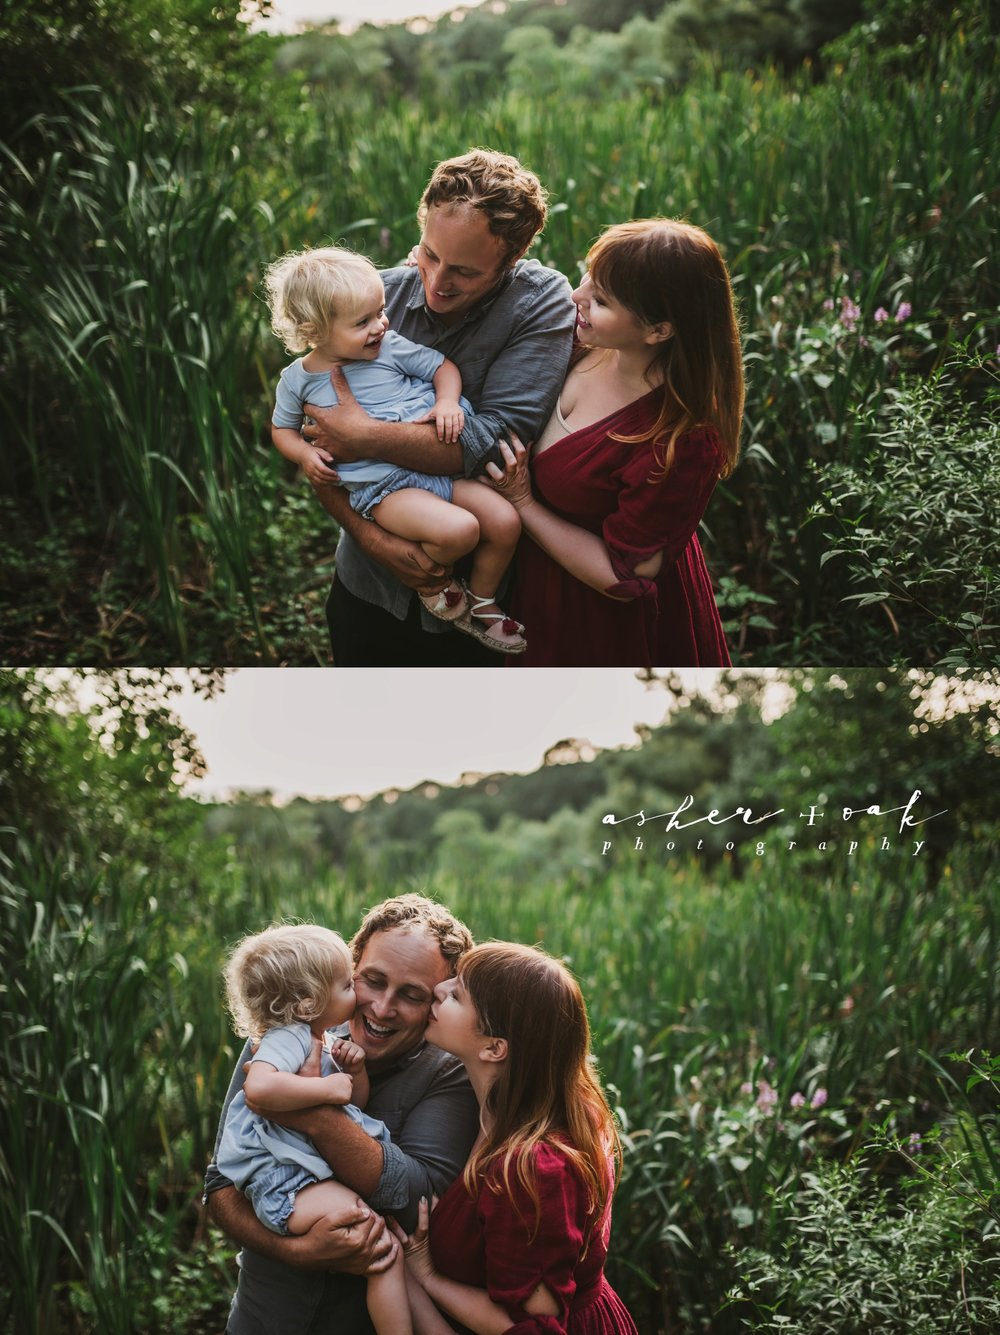 Massachusetts_Family_Photographer_Portrait_Dad_Mom_Toddler_Kiss_Beautiful_Arnold_Arboretum_Boston_Asher_and_Oak_Photography.jpg